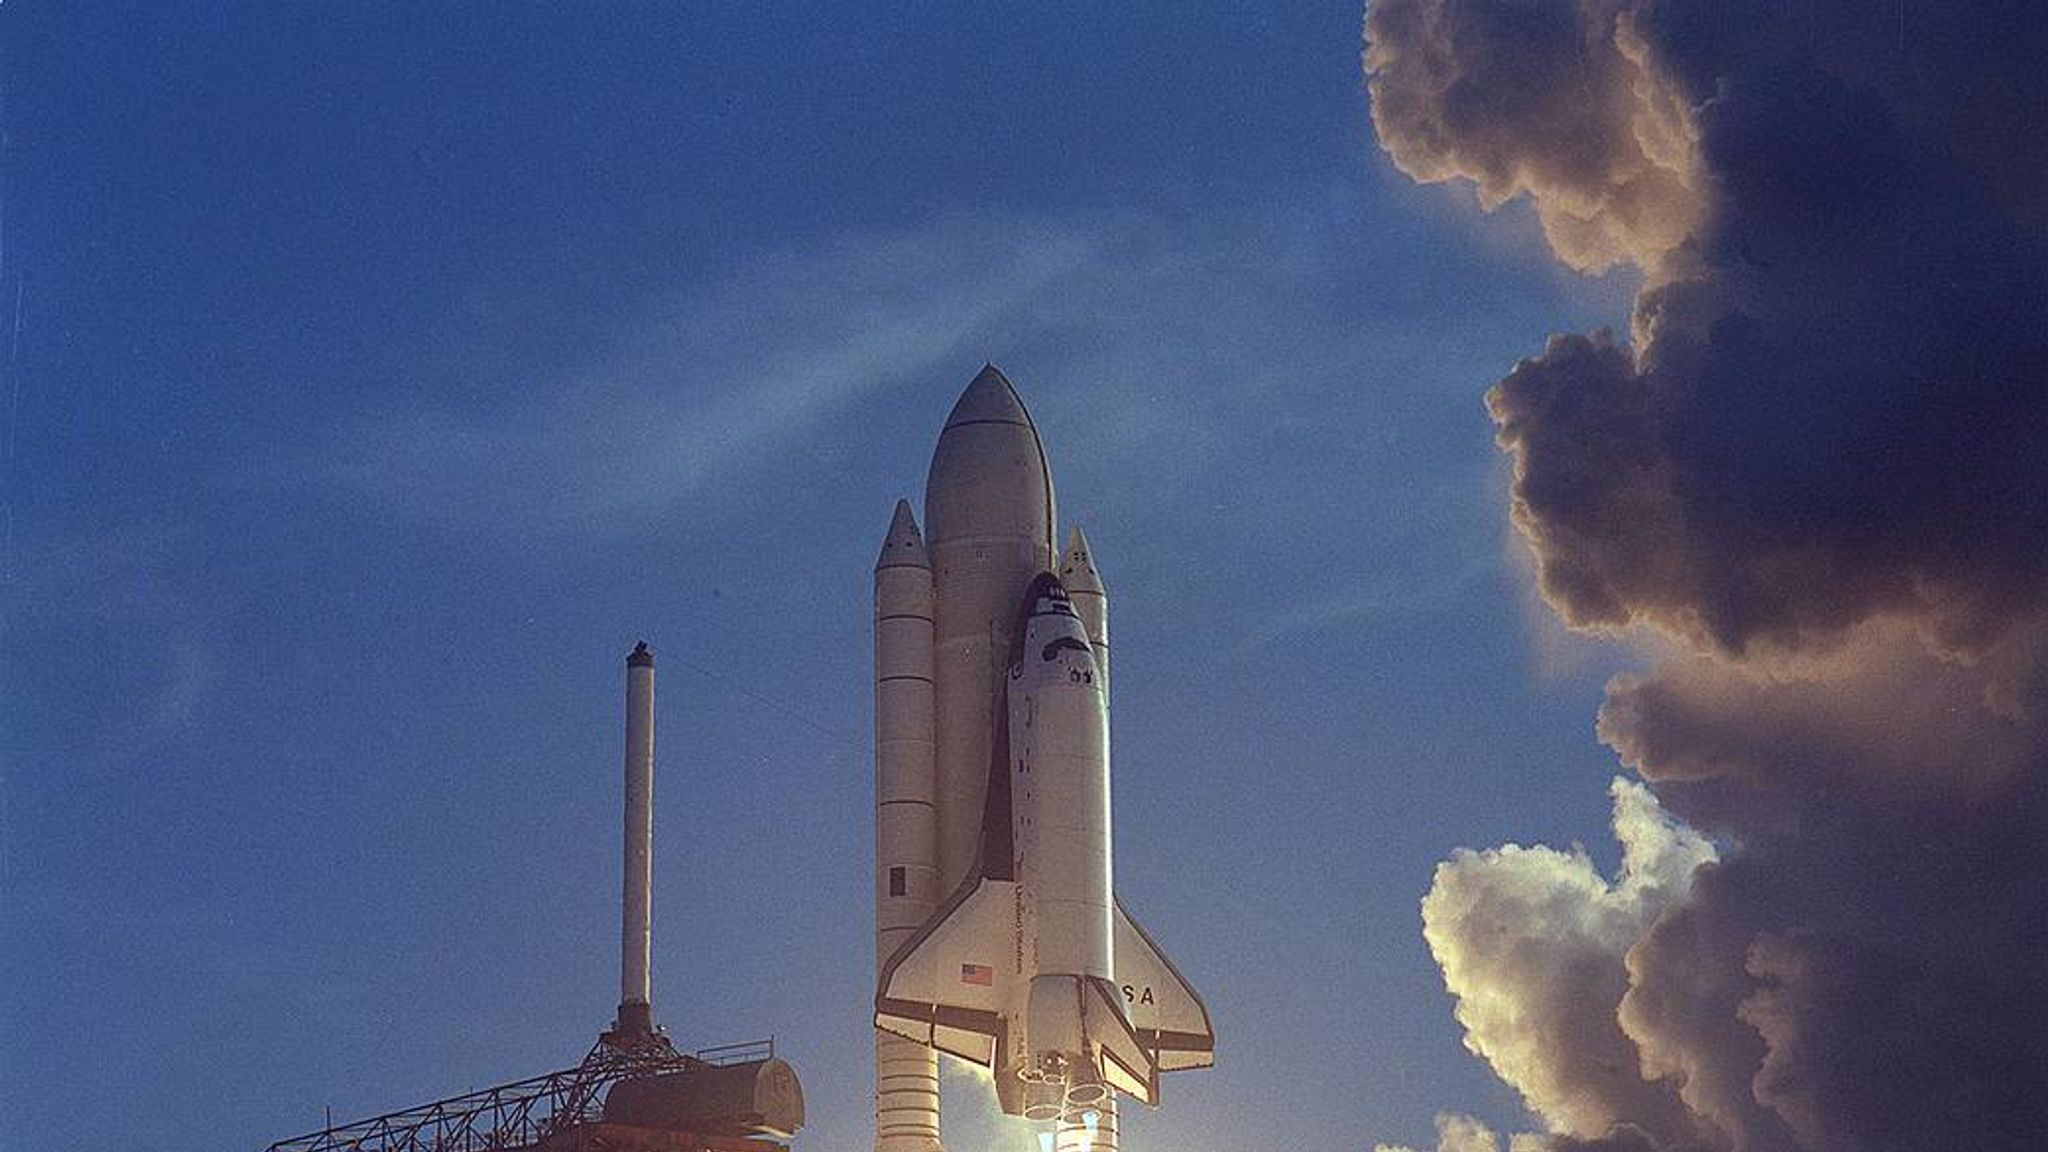 nasas space shuttle rises from the dead to power new - HD 1920×1080